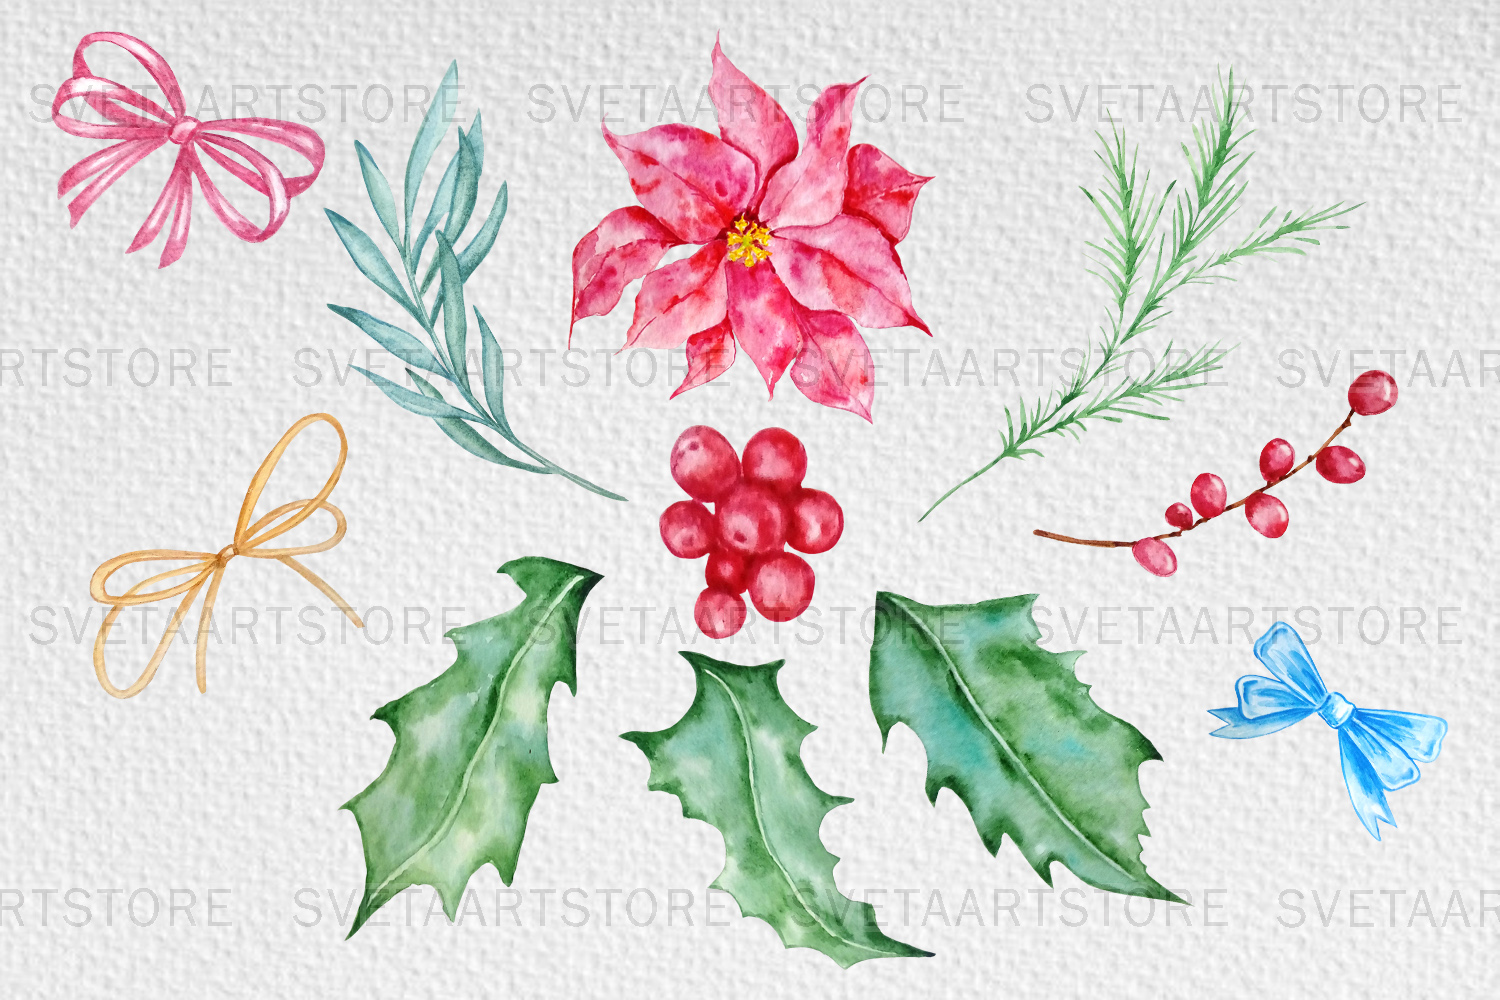 Christmas cupcakes clipart, watercolor cake example image 5